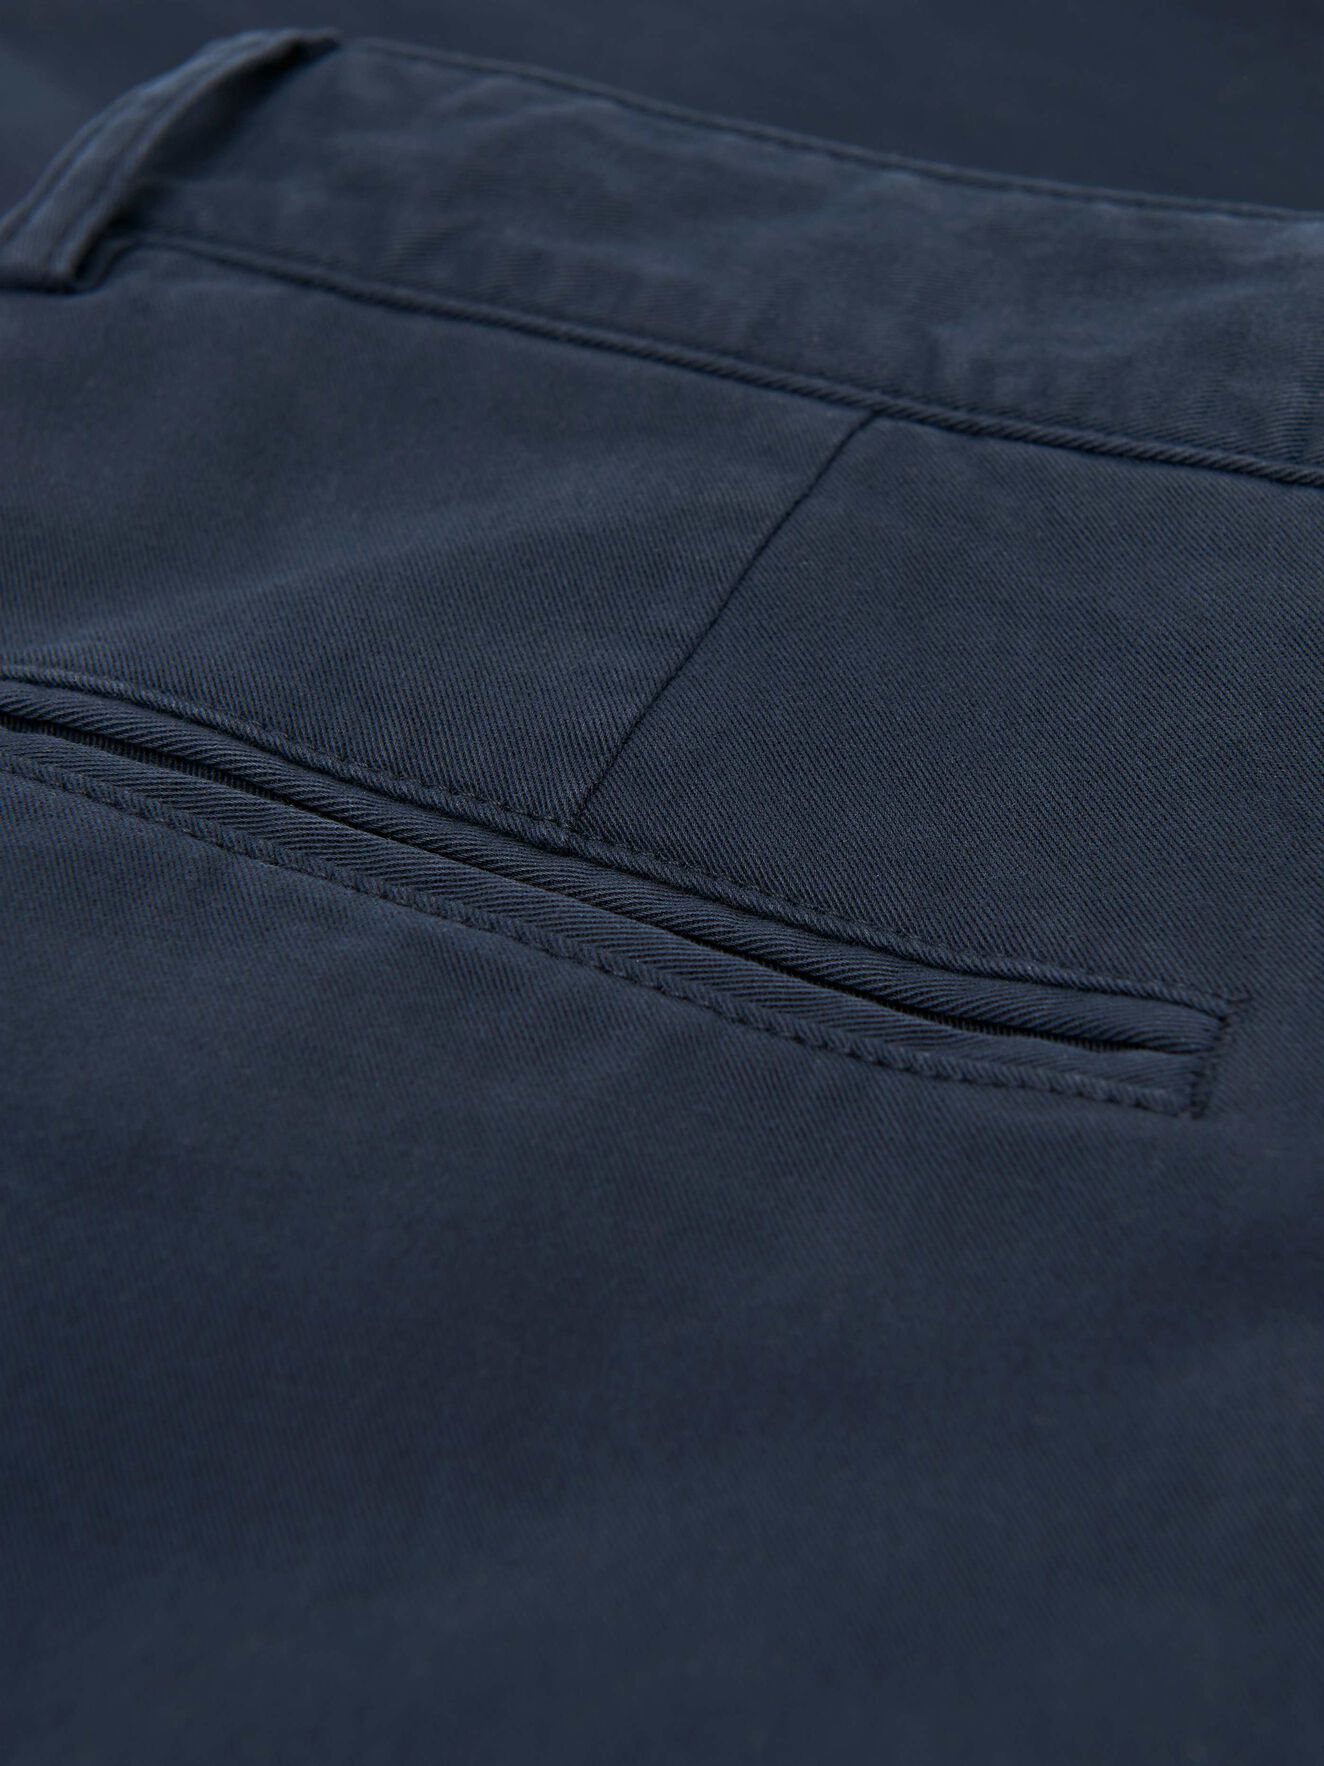 Transit Chinos in Royal Blue from Tiger of Sweden